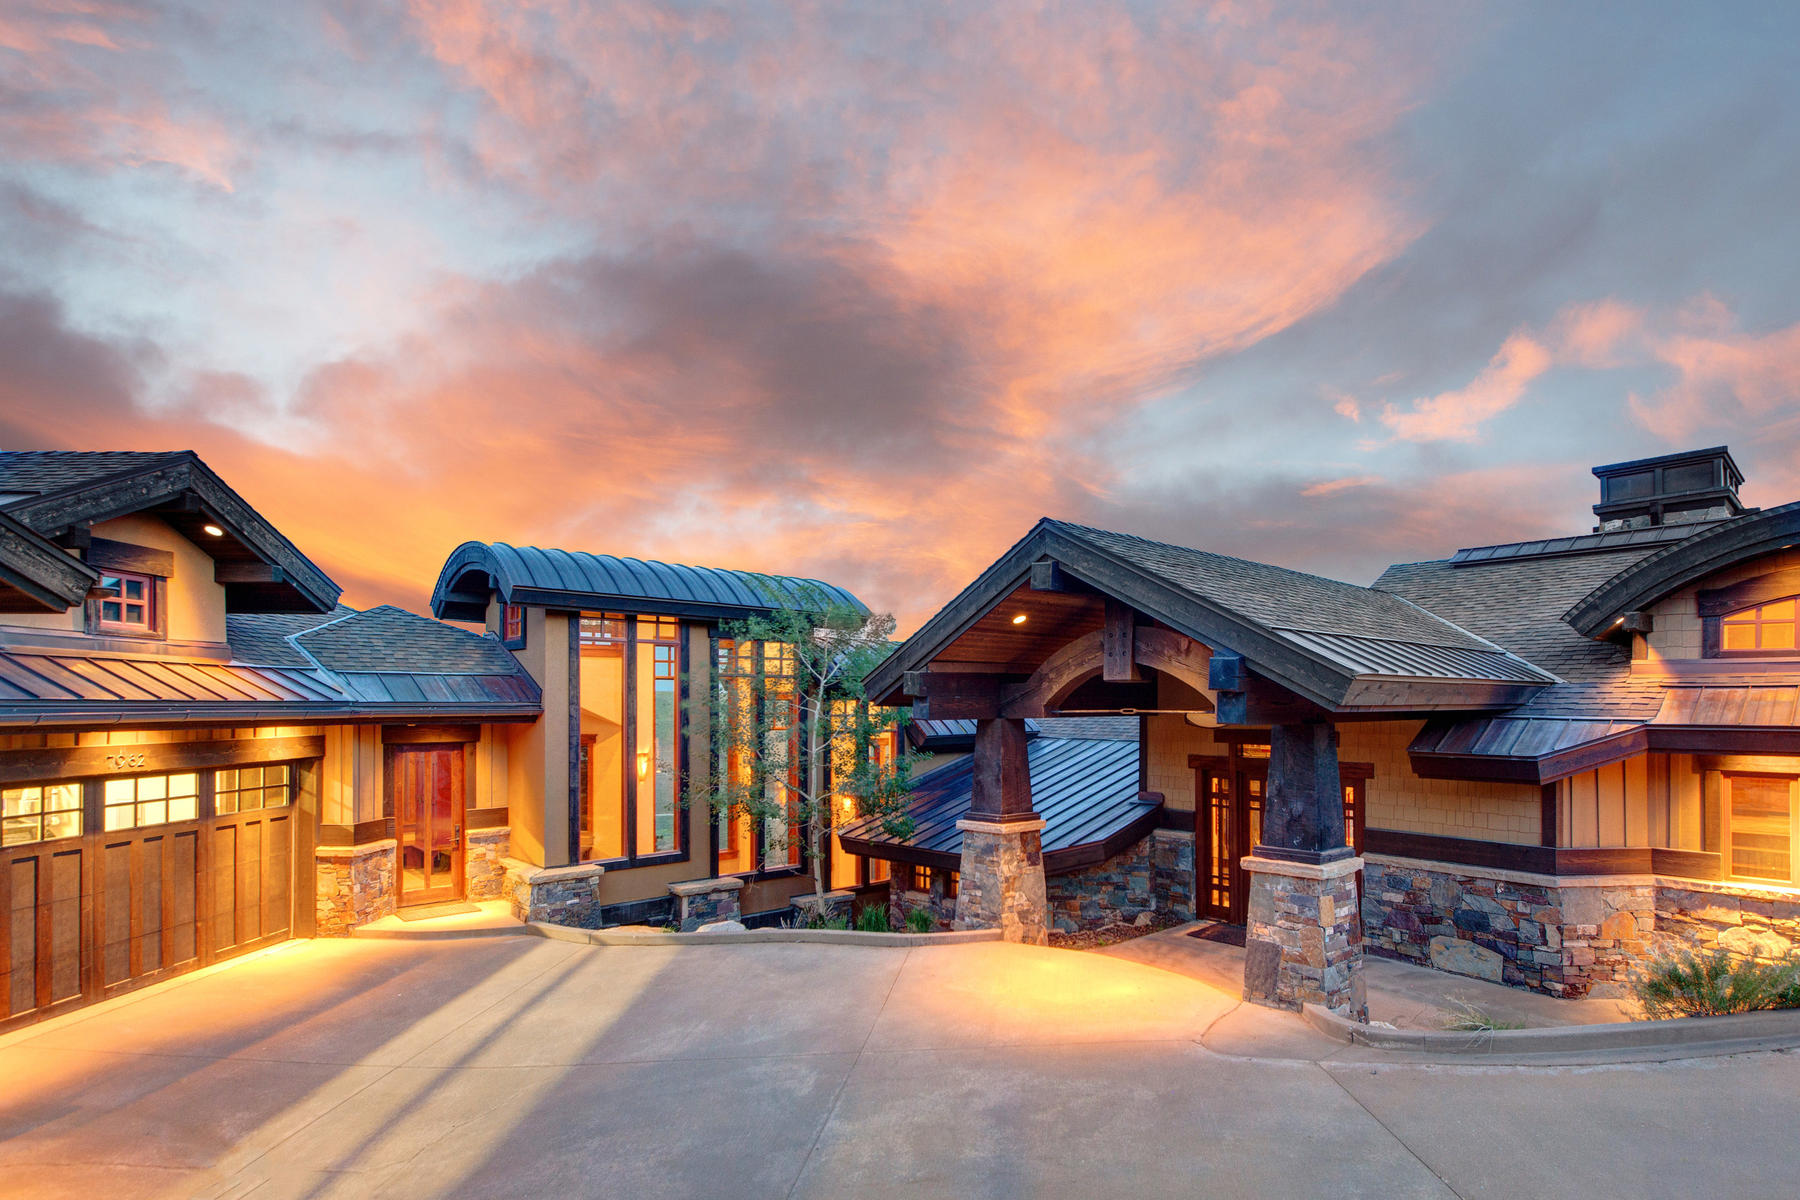 一戸建て のために 売買 アット Warm Contemporary Promontory Home With 270 Degree Mountain Views 7982 N Sunrise Lp Park City, ユタ, 84098 アメリカ合衆国